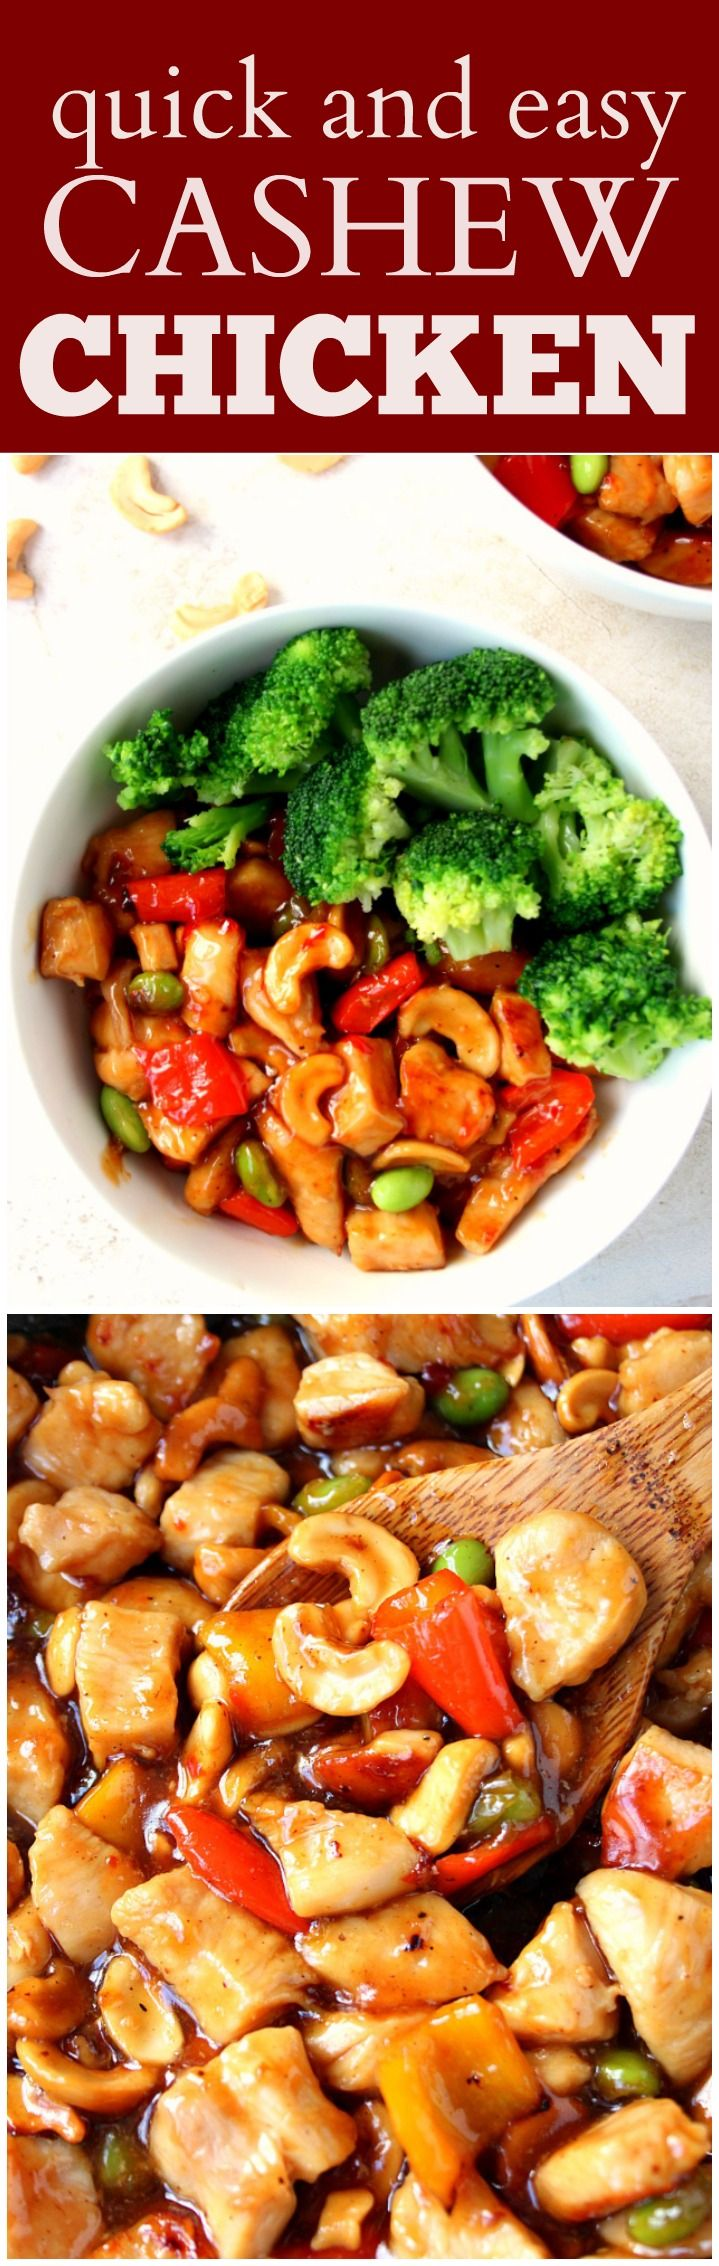 Quick and Easy Cashew Chicken Recipe -better than takeout Asian chicken with cashew and vegetables! Quick, easy and flavorful!: